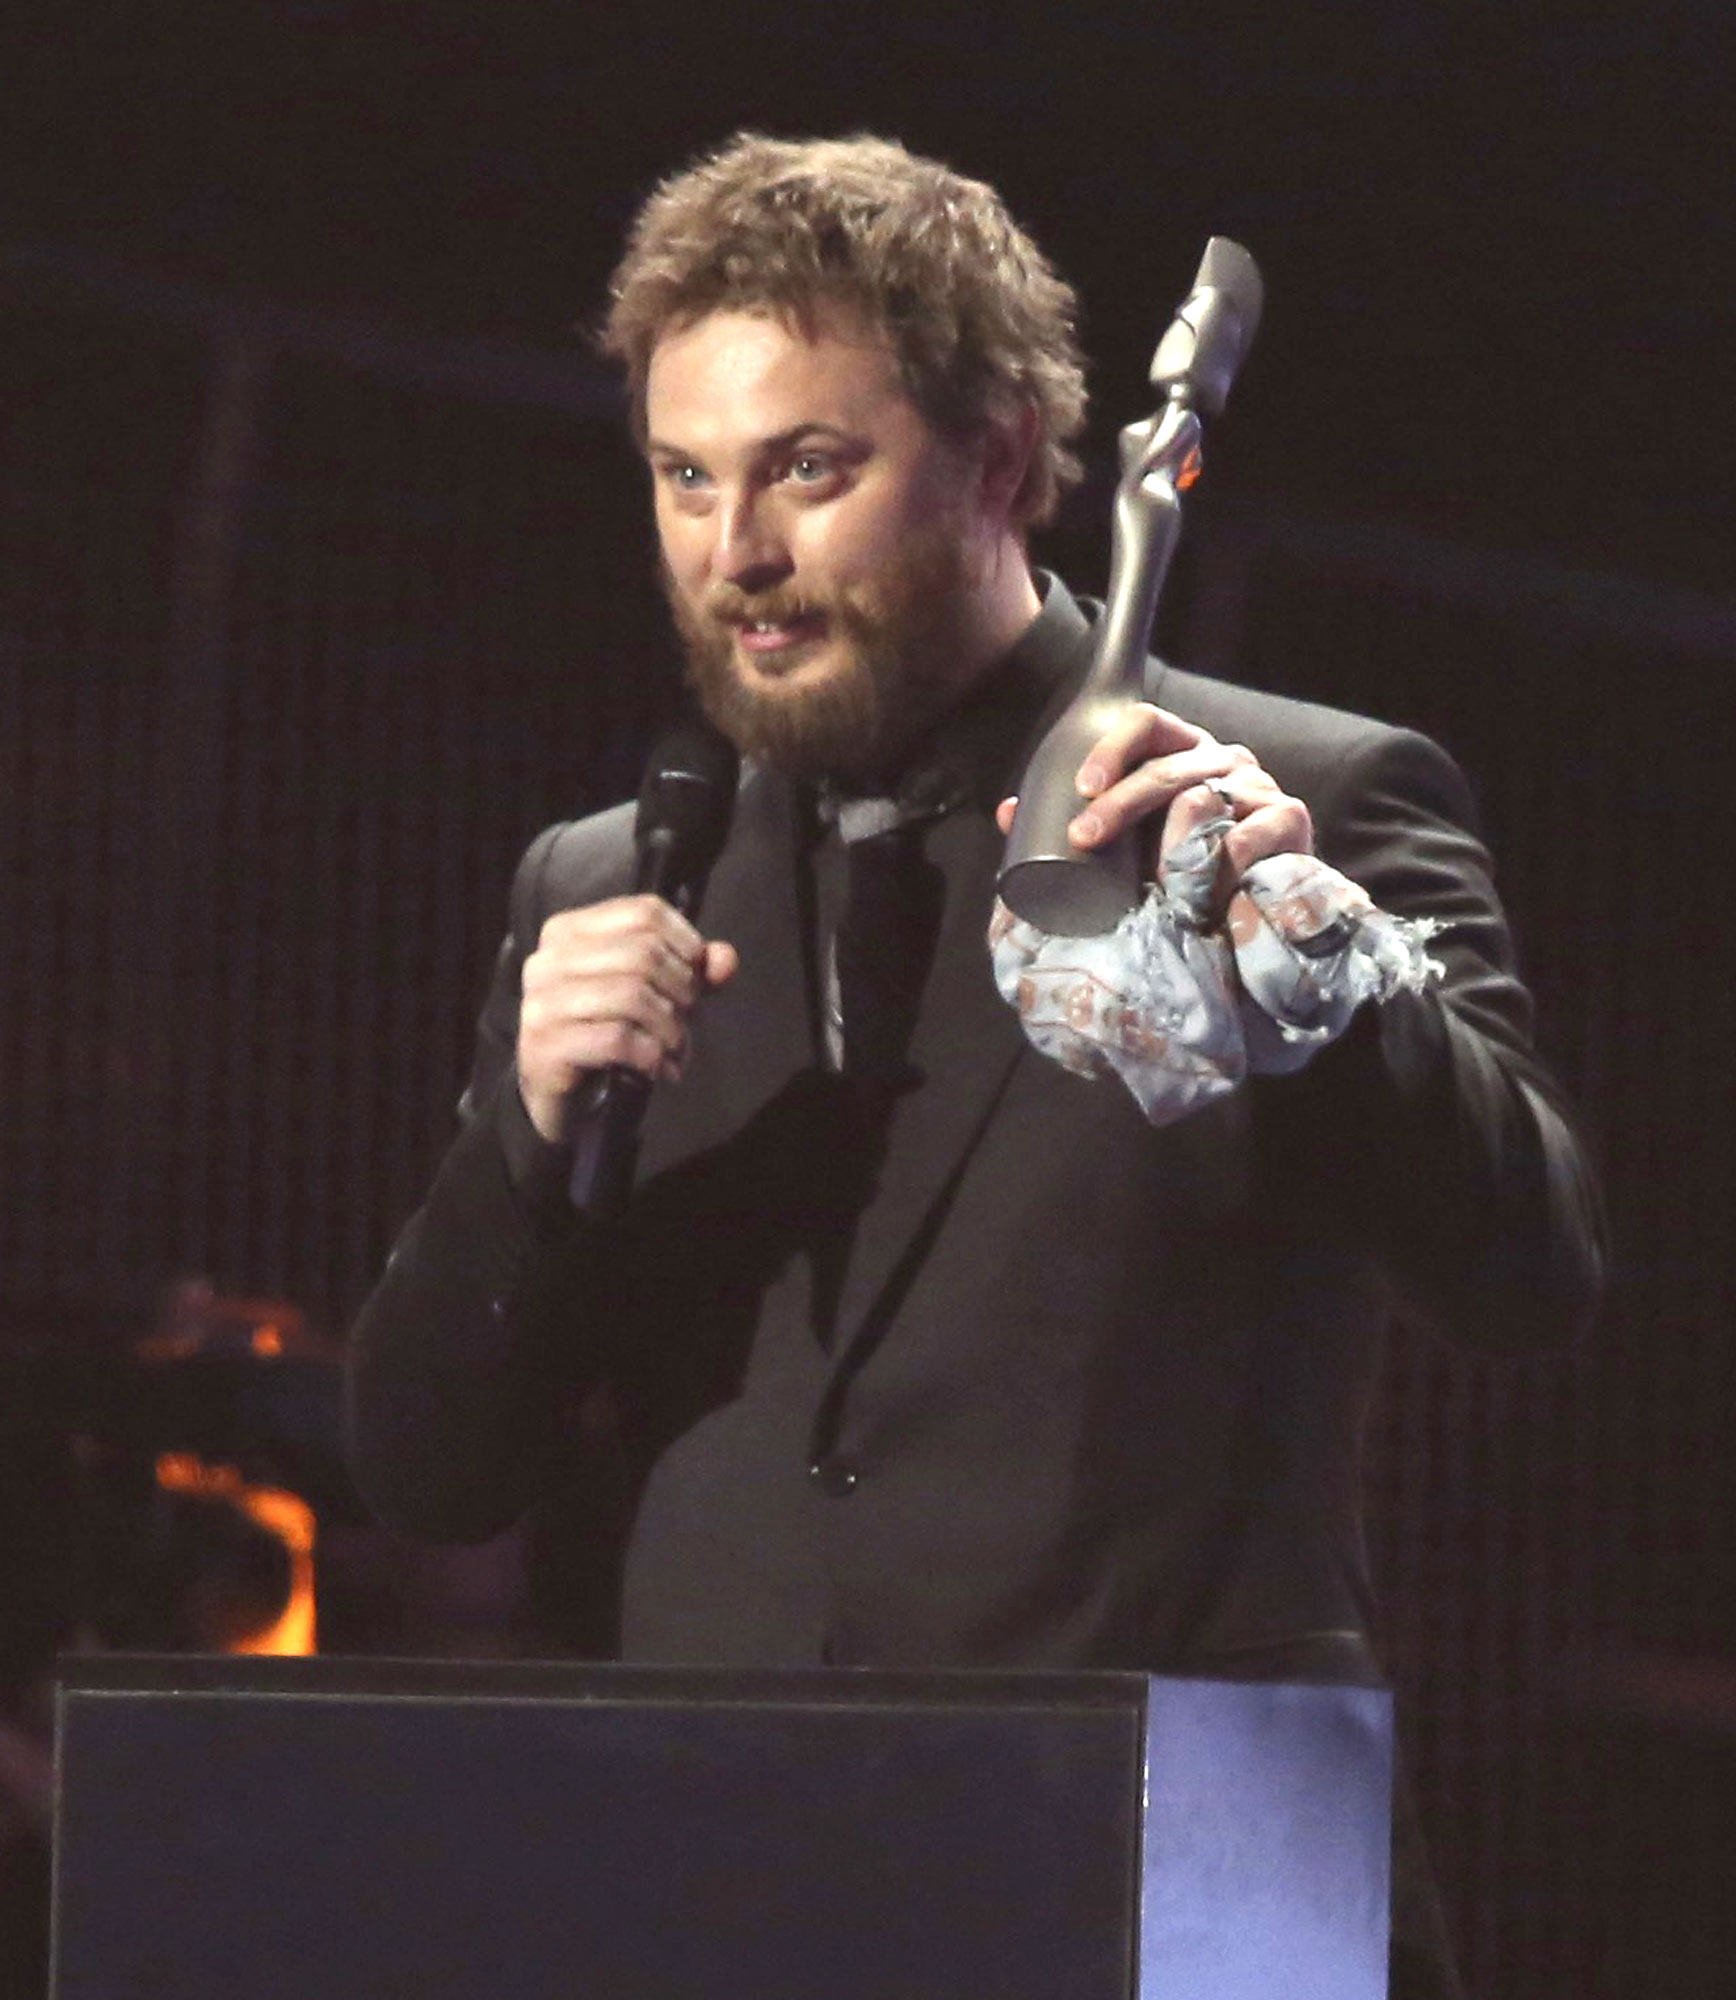 Duncan Jones, right, son of the late David Bowie, accepts the award for Album Of The Year on behalf of his father on stage at the Brit Awards 2017 in London, Wednesday, Feb. 22, 2017. (Photo by Joel Ryan/Invision/AP)